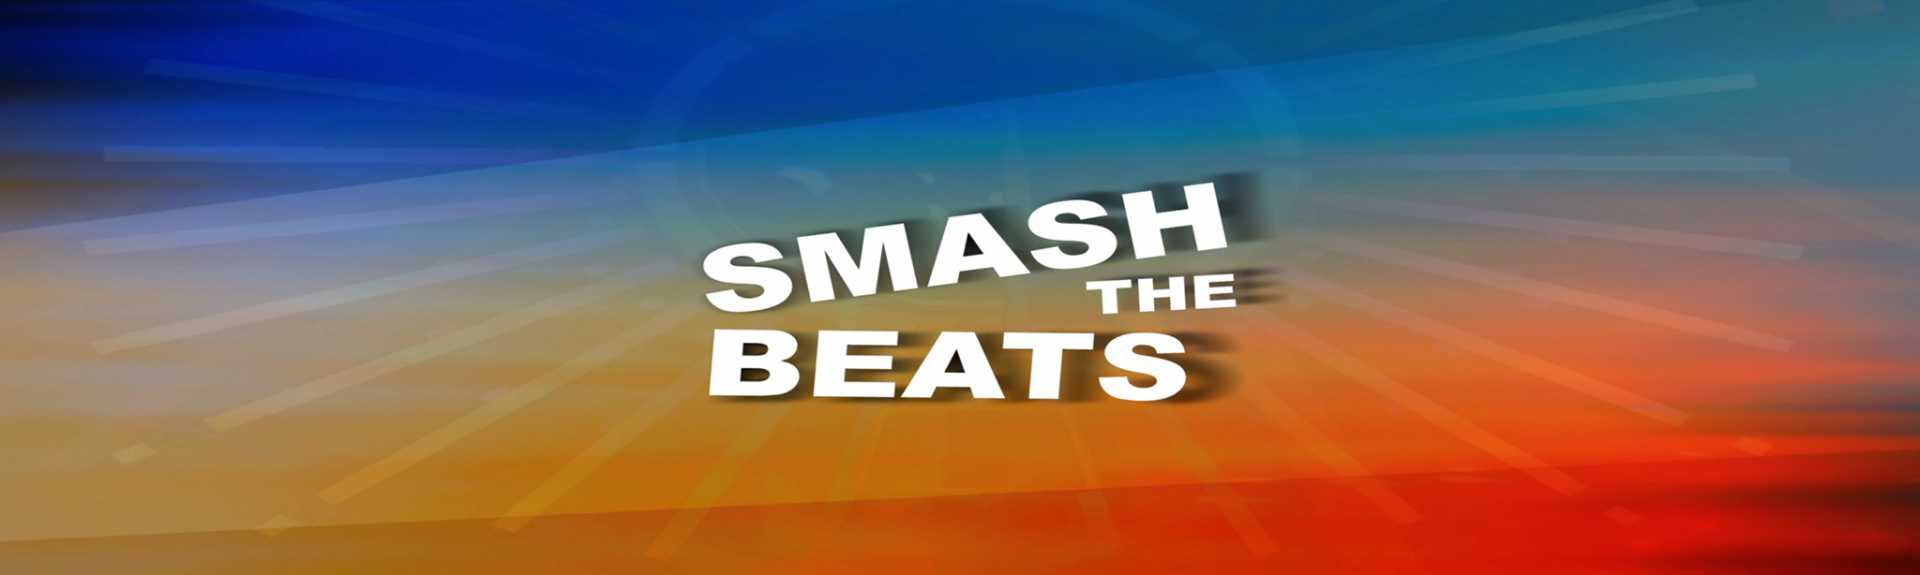 Smash The Beats